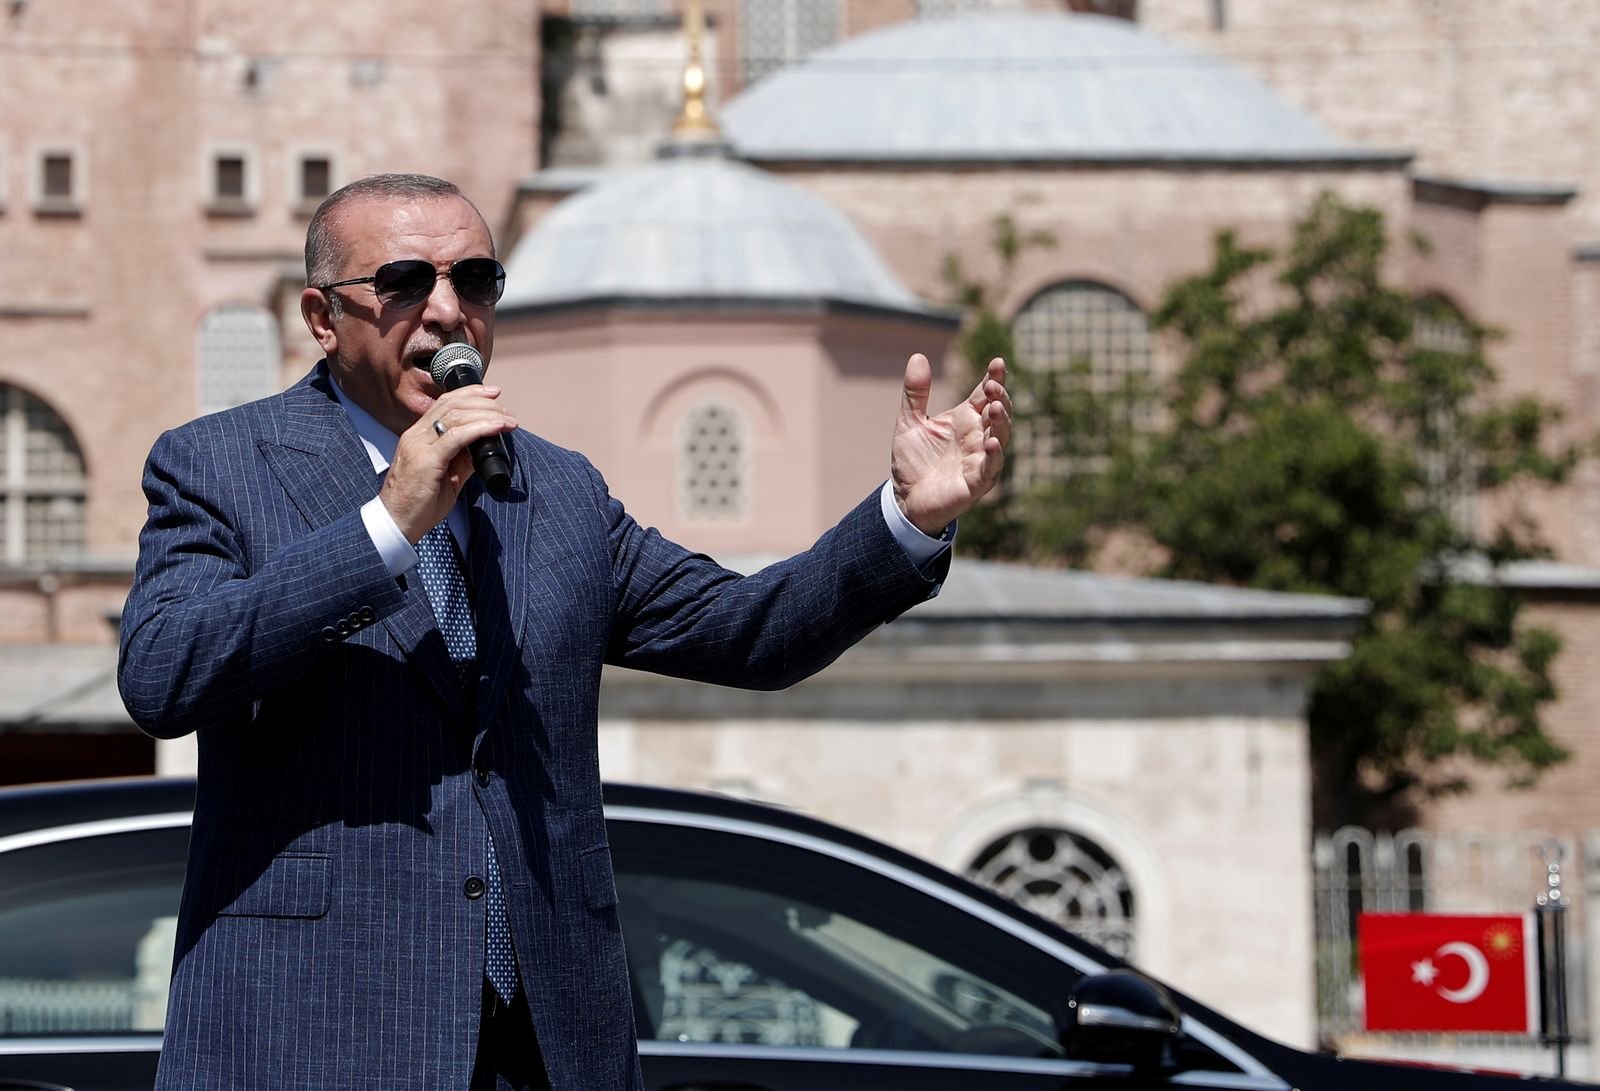 FILE PHOTO: Turkish President Erdogan talks to the media after attending Friday prayers at Hagia Sophia Grand Mosque in Istanbul